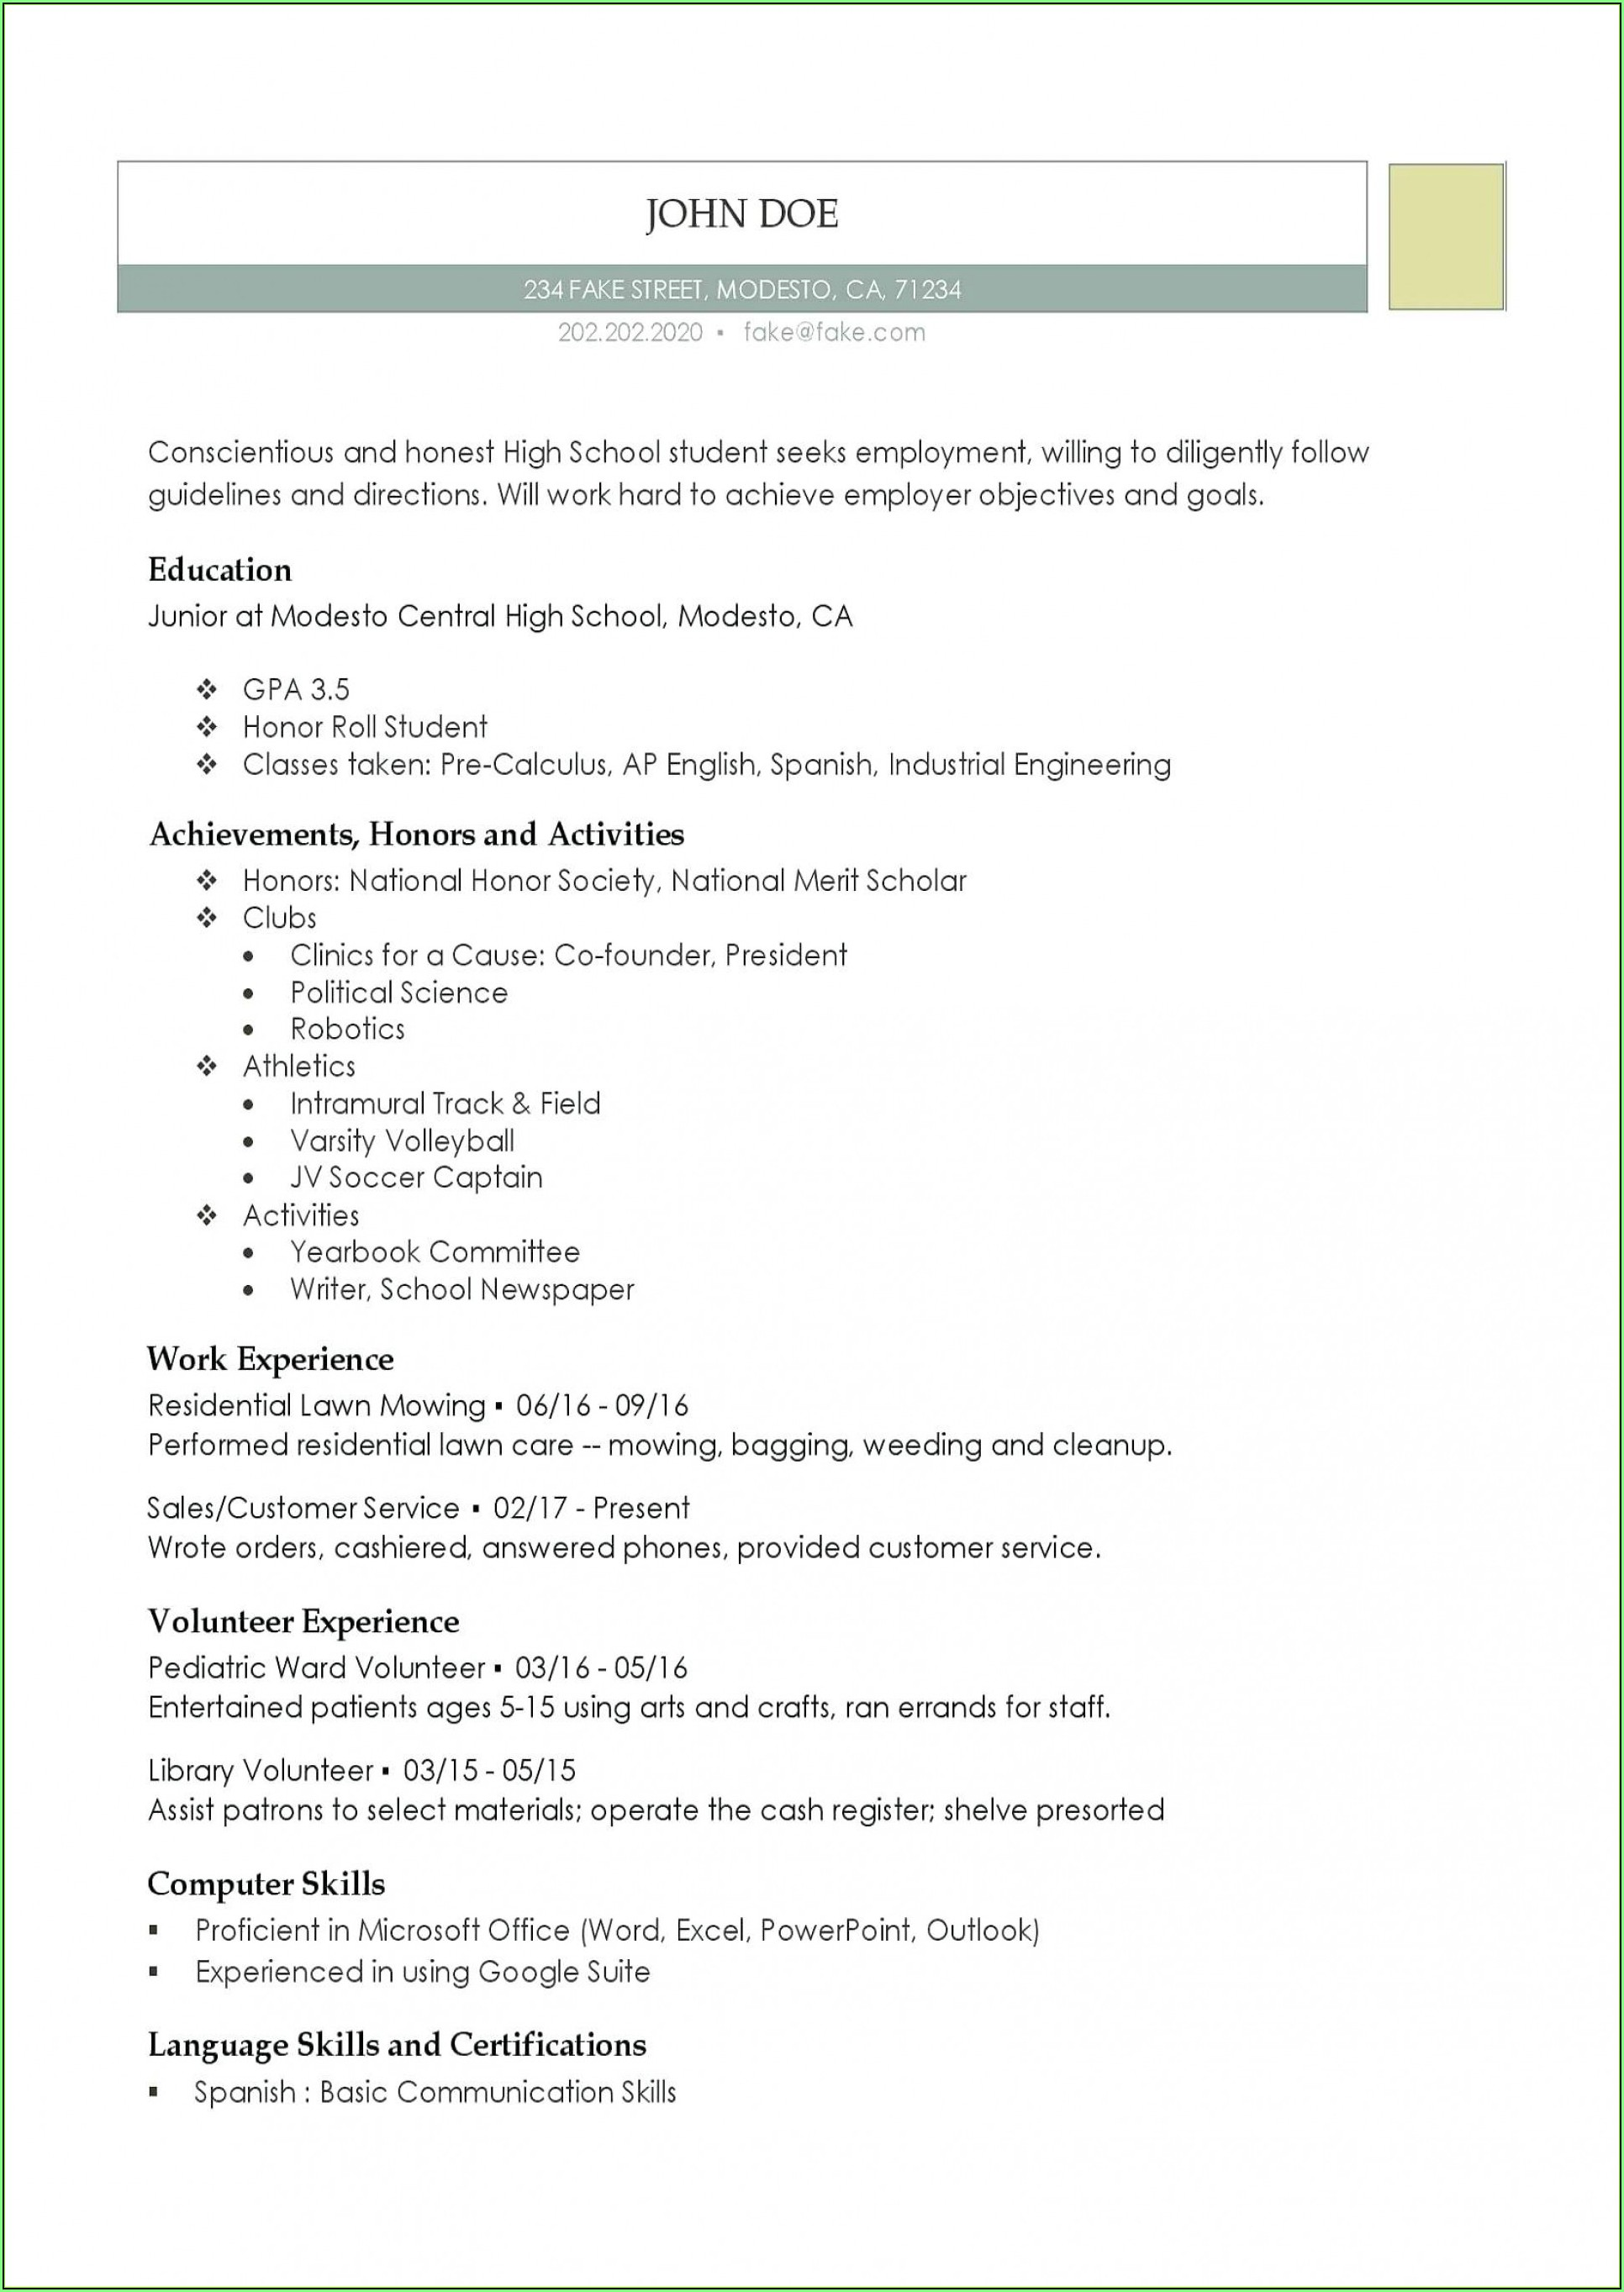 Free High School Resume Template Word